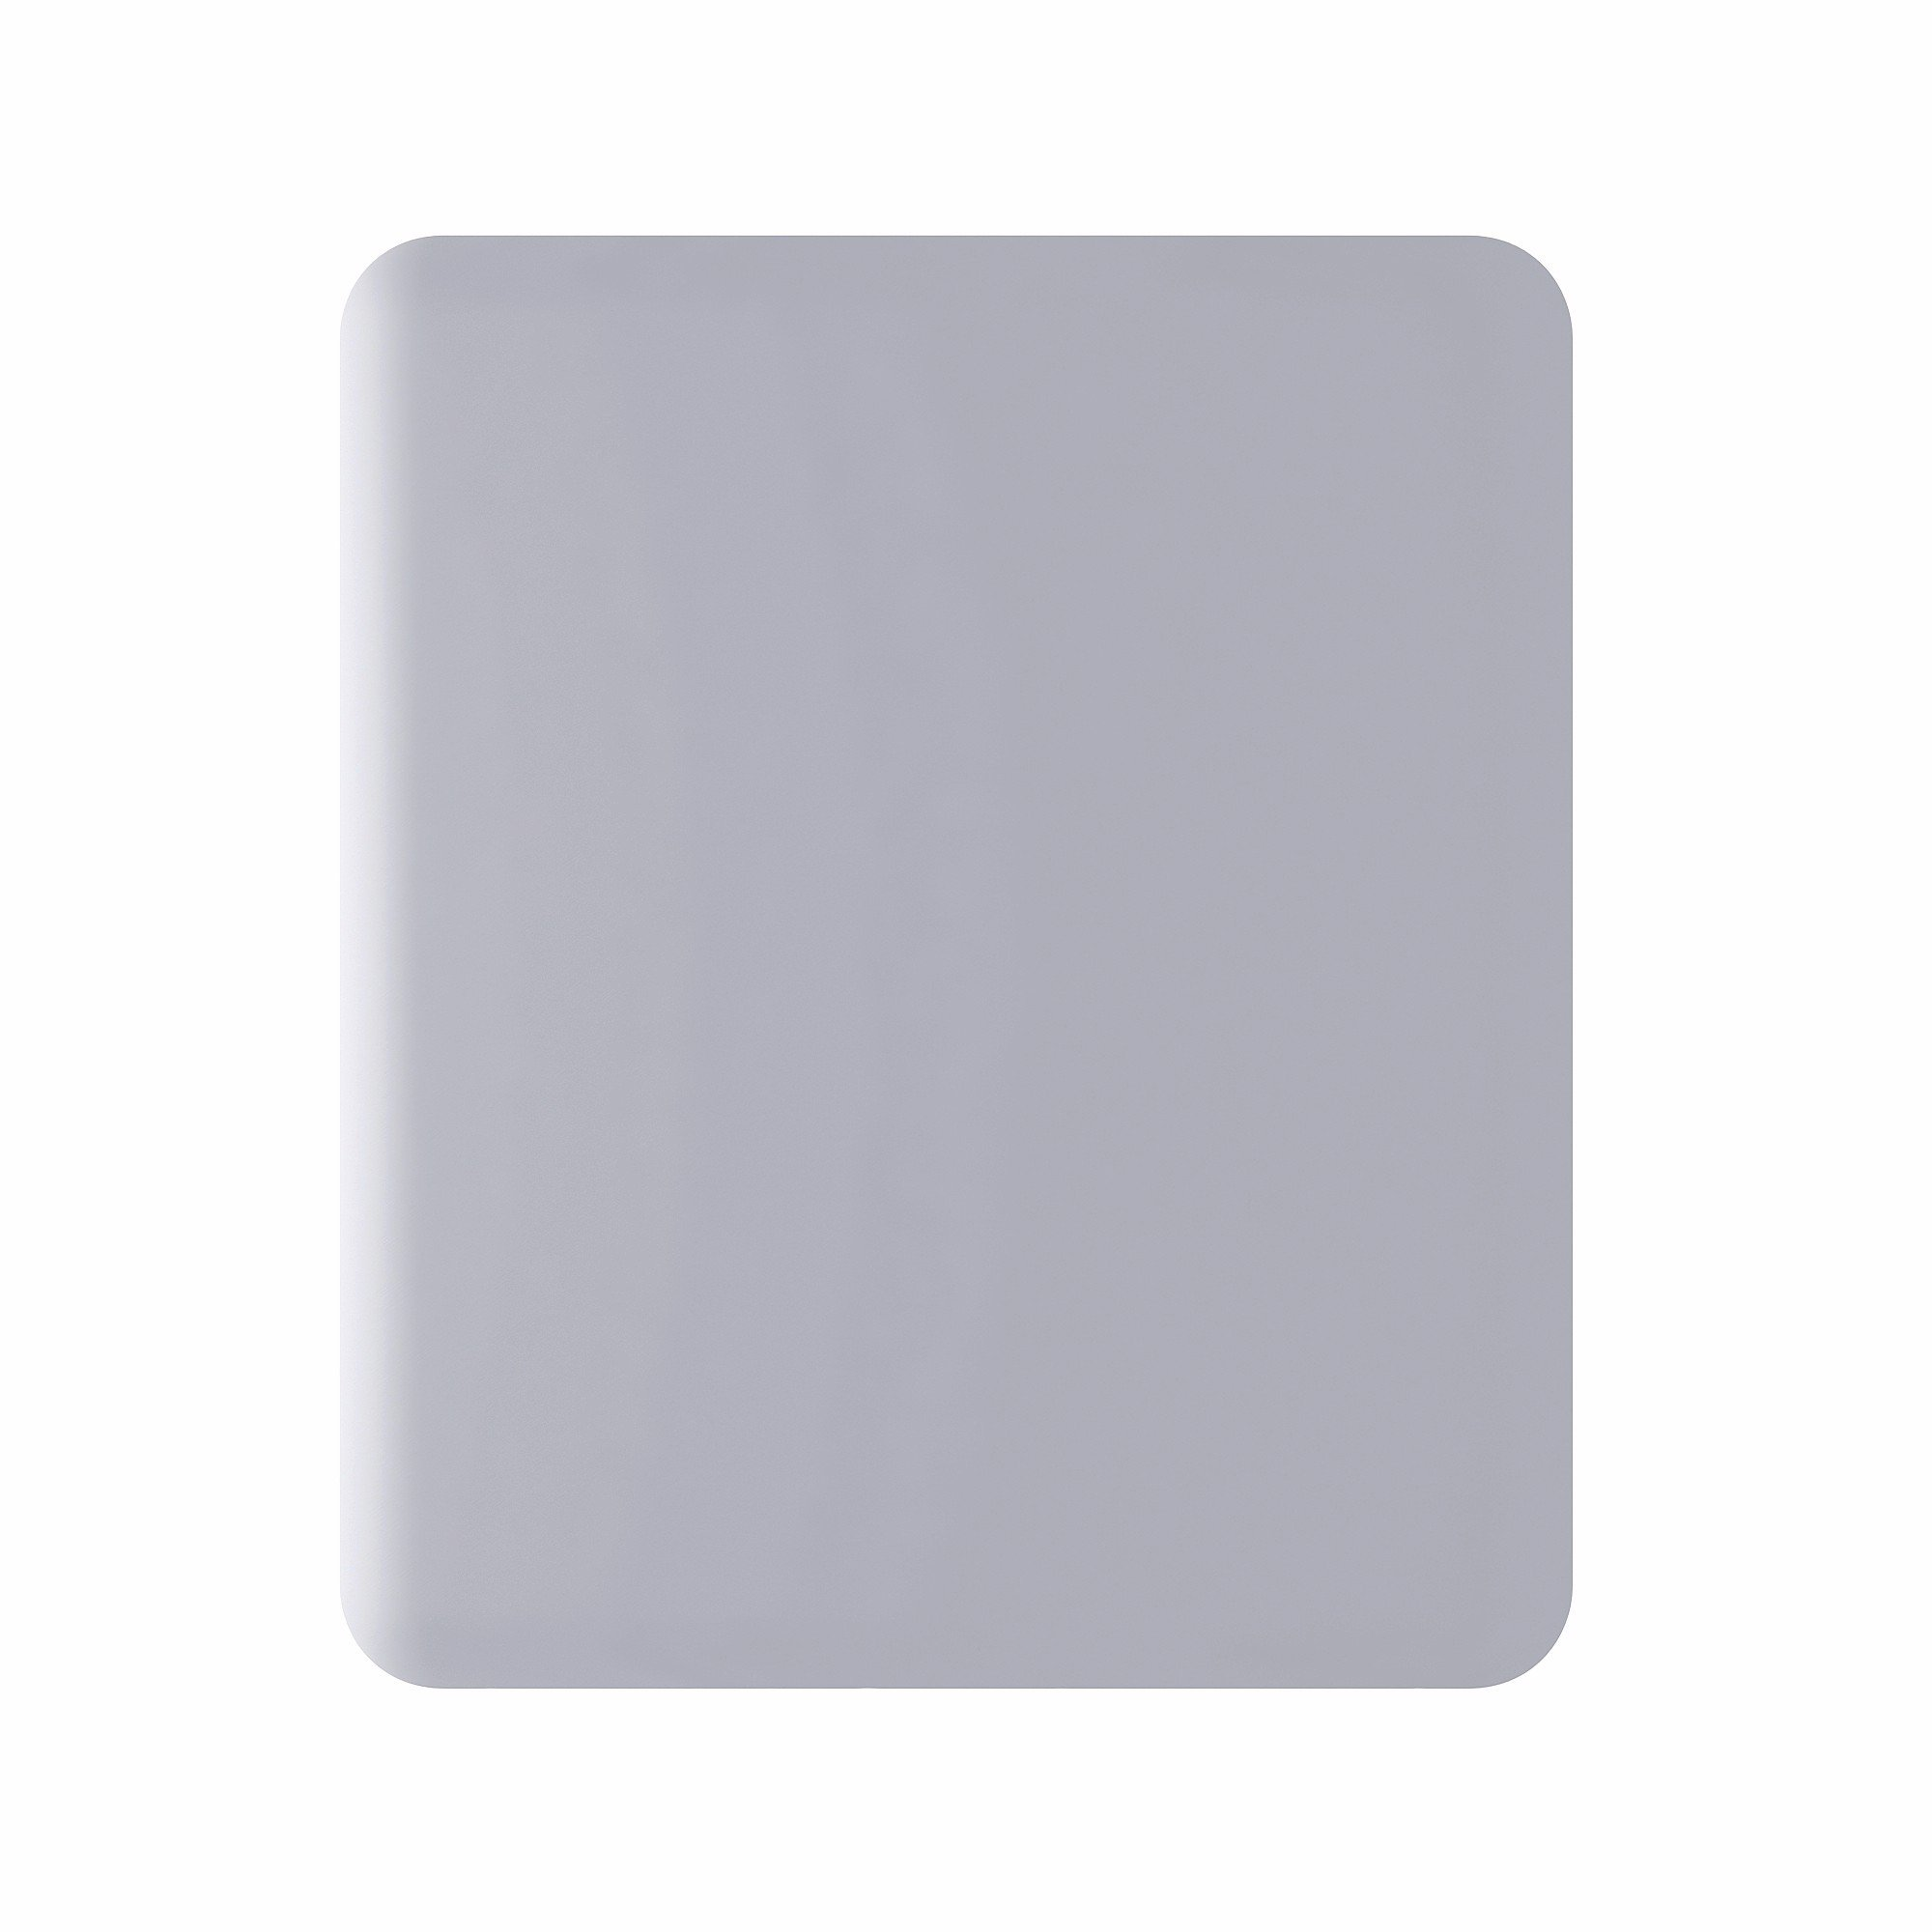 Standard bedsheet 04 Light grey